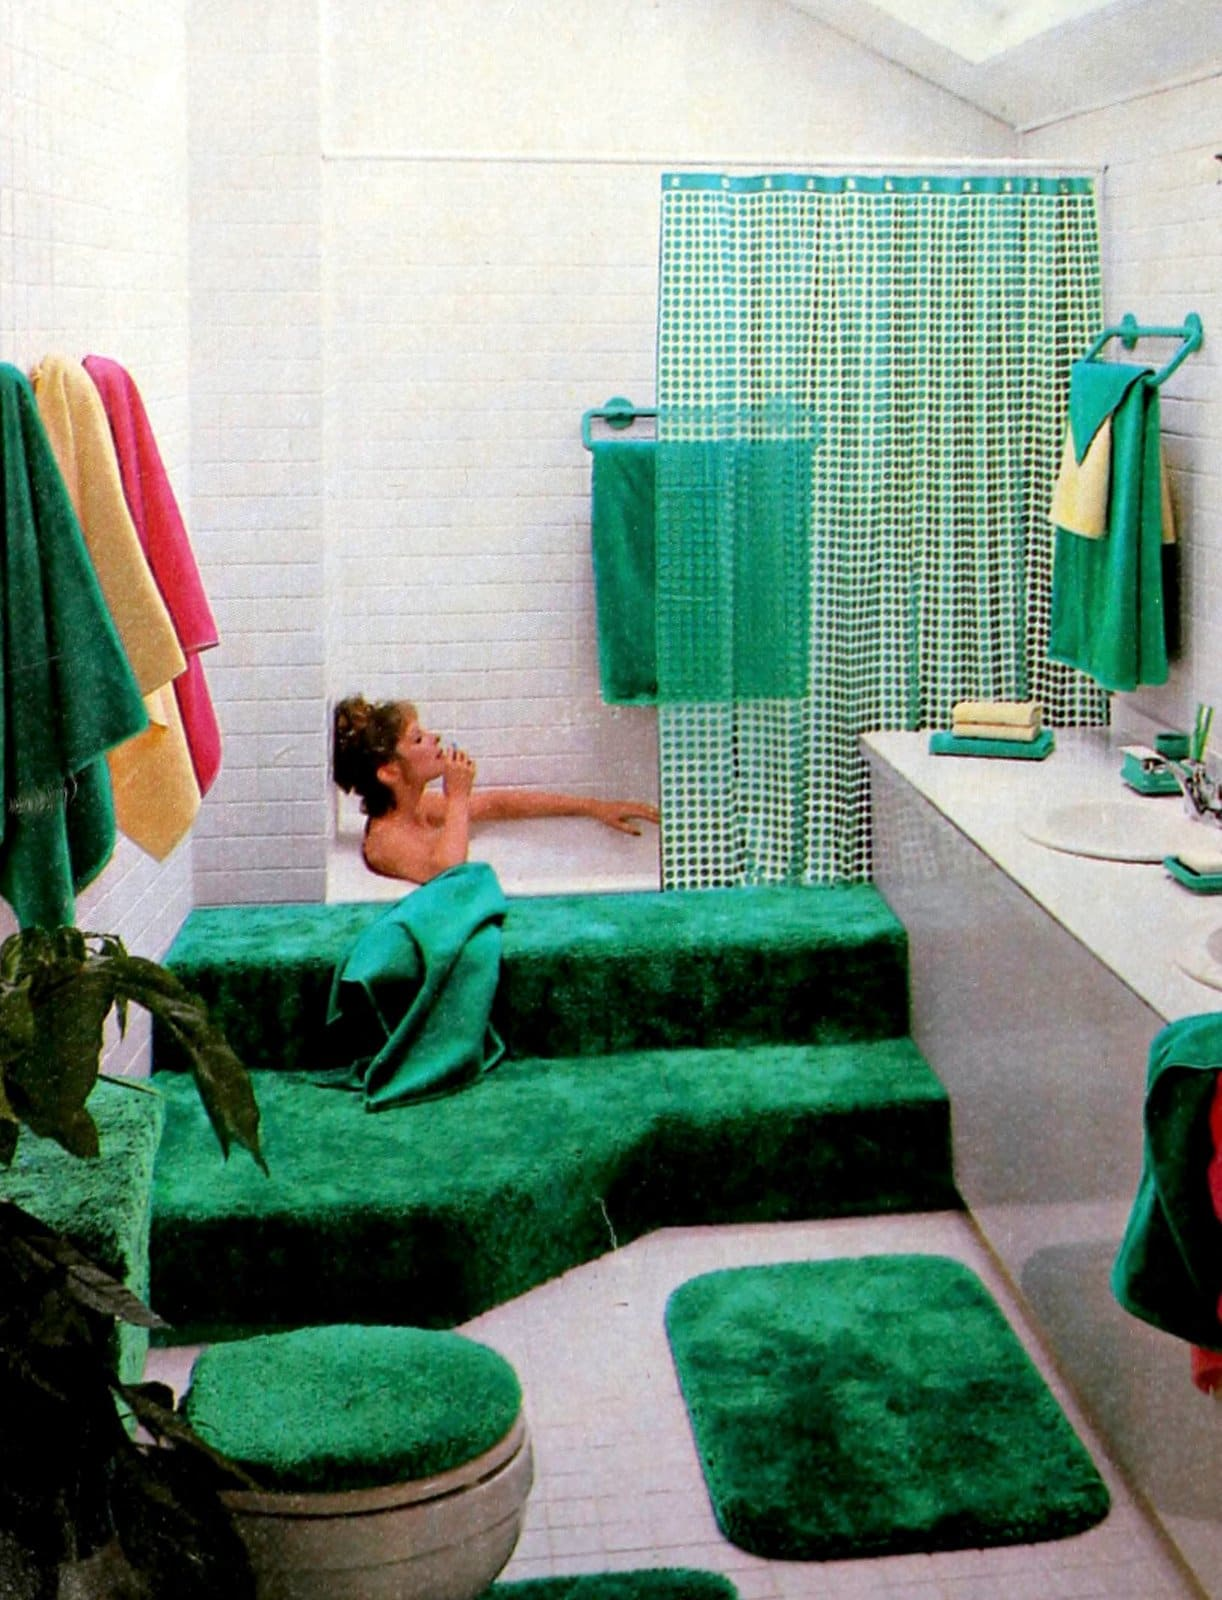 Bright green bathroom carpeting and decor (1986)